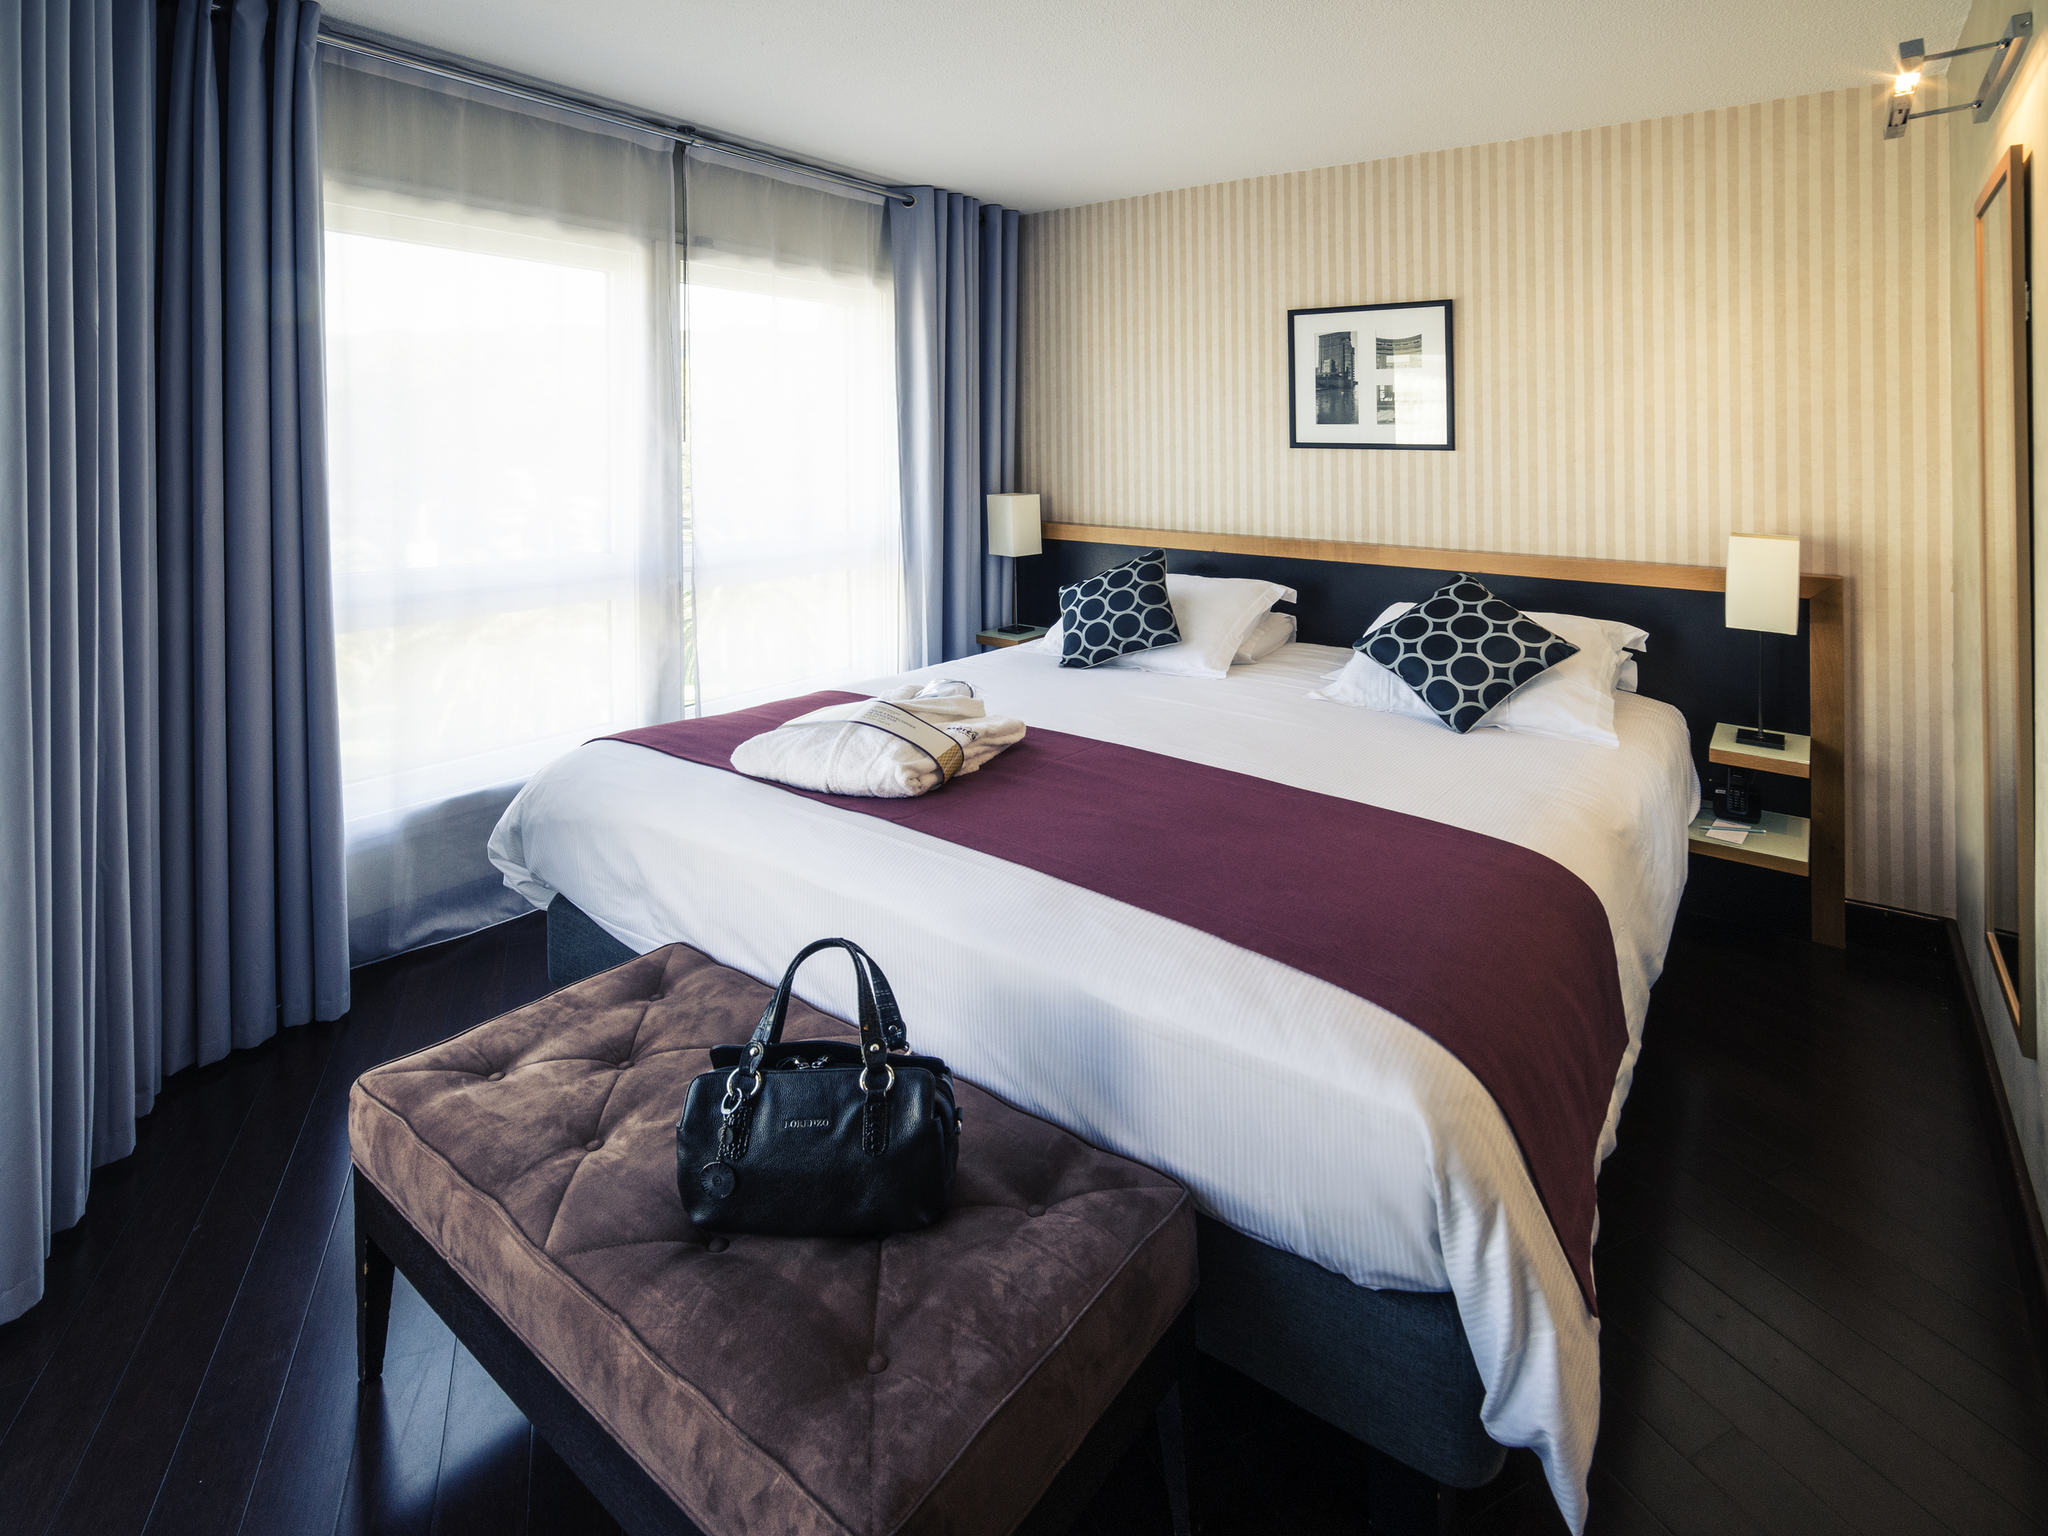 klippan chat rooms Located in central klippan, this hotel offers brightly decorated rooms with free wifi access woodslands golf club is a 10-minute drive away.